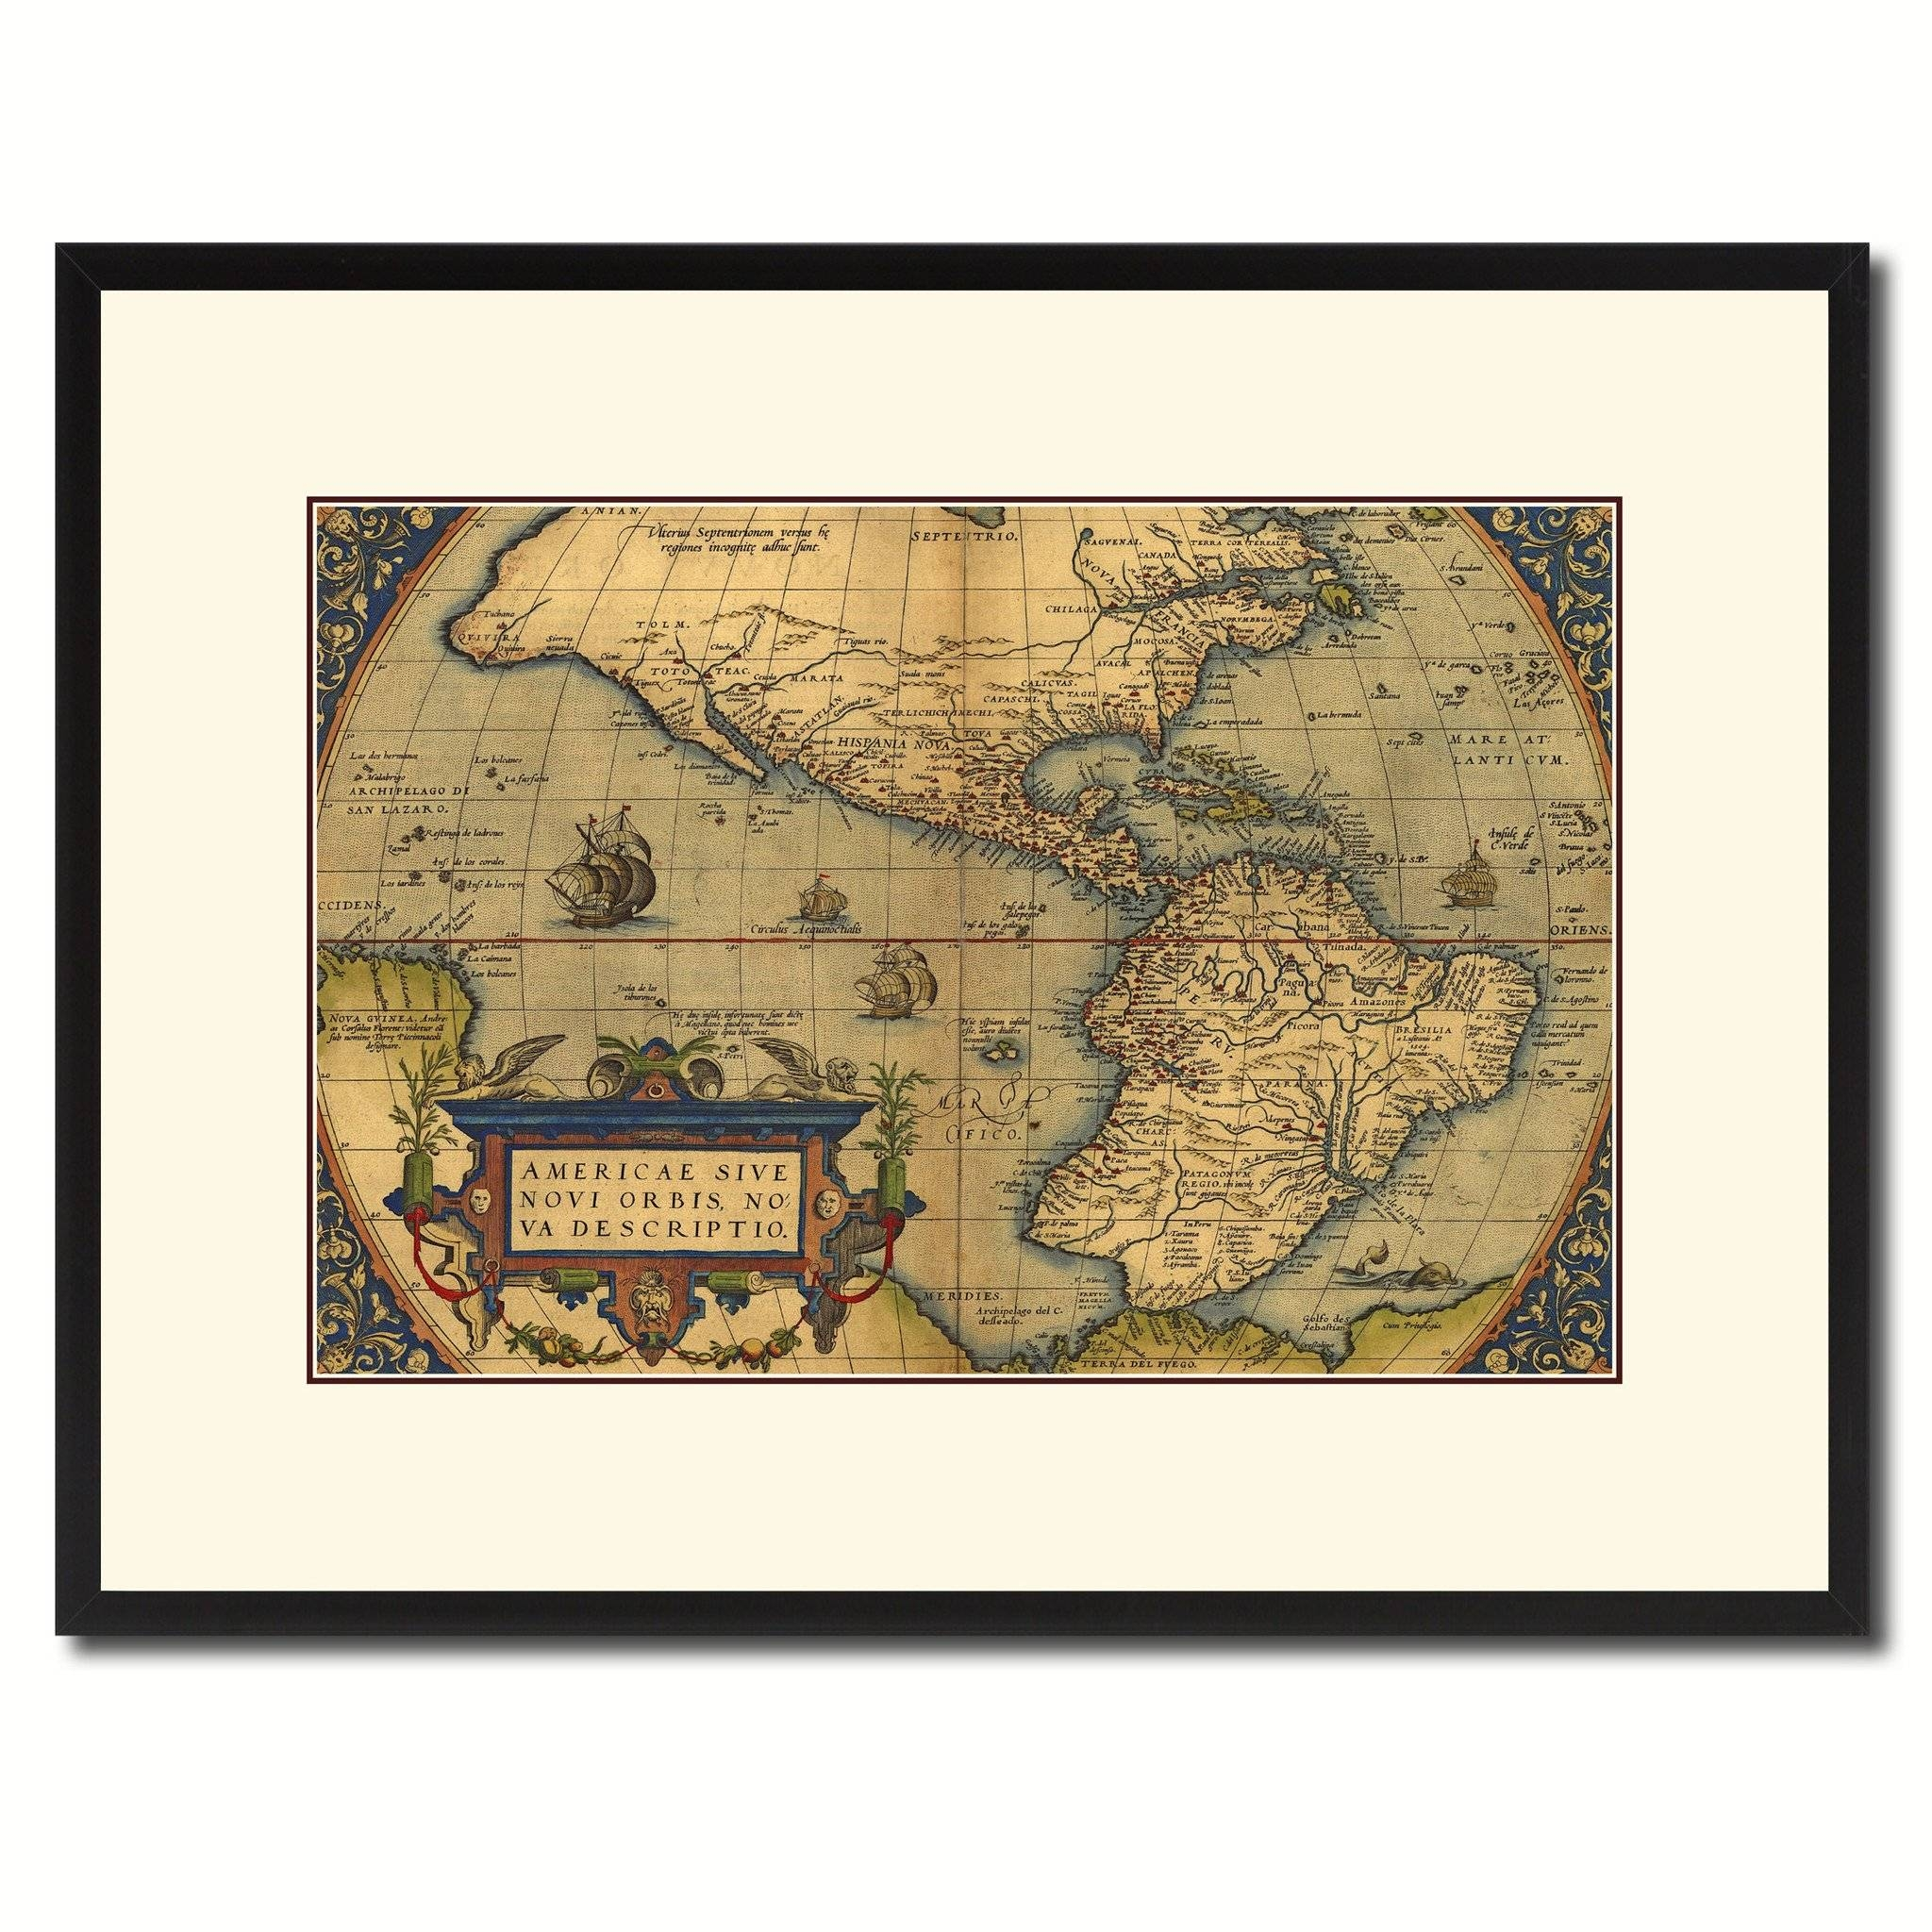 North South America Vintage Antique Map Wall Art Home Decor Gift With Regard To Newest Map Wall Art (View 9 of 25)